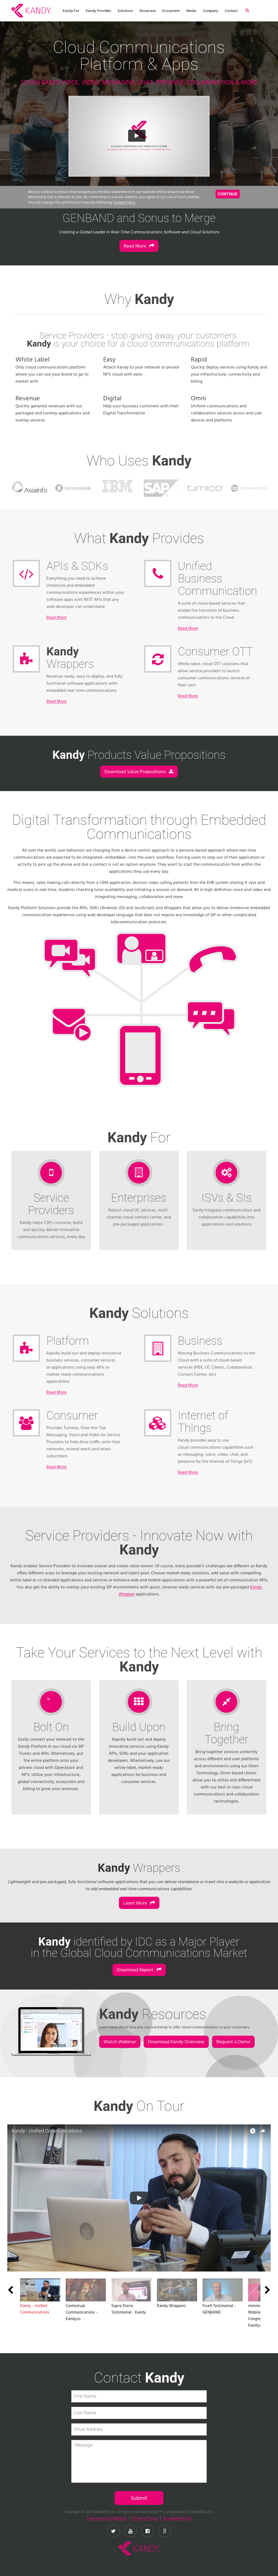 Kandy Competitors, Revenue and Employees - Owler Company Profile